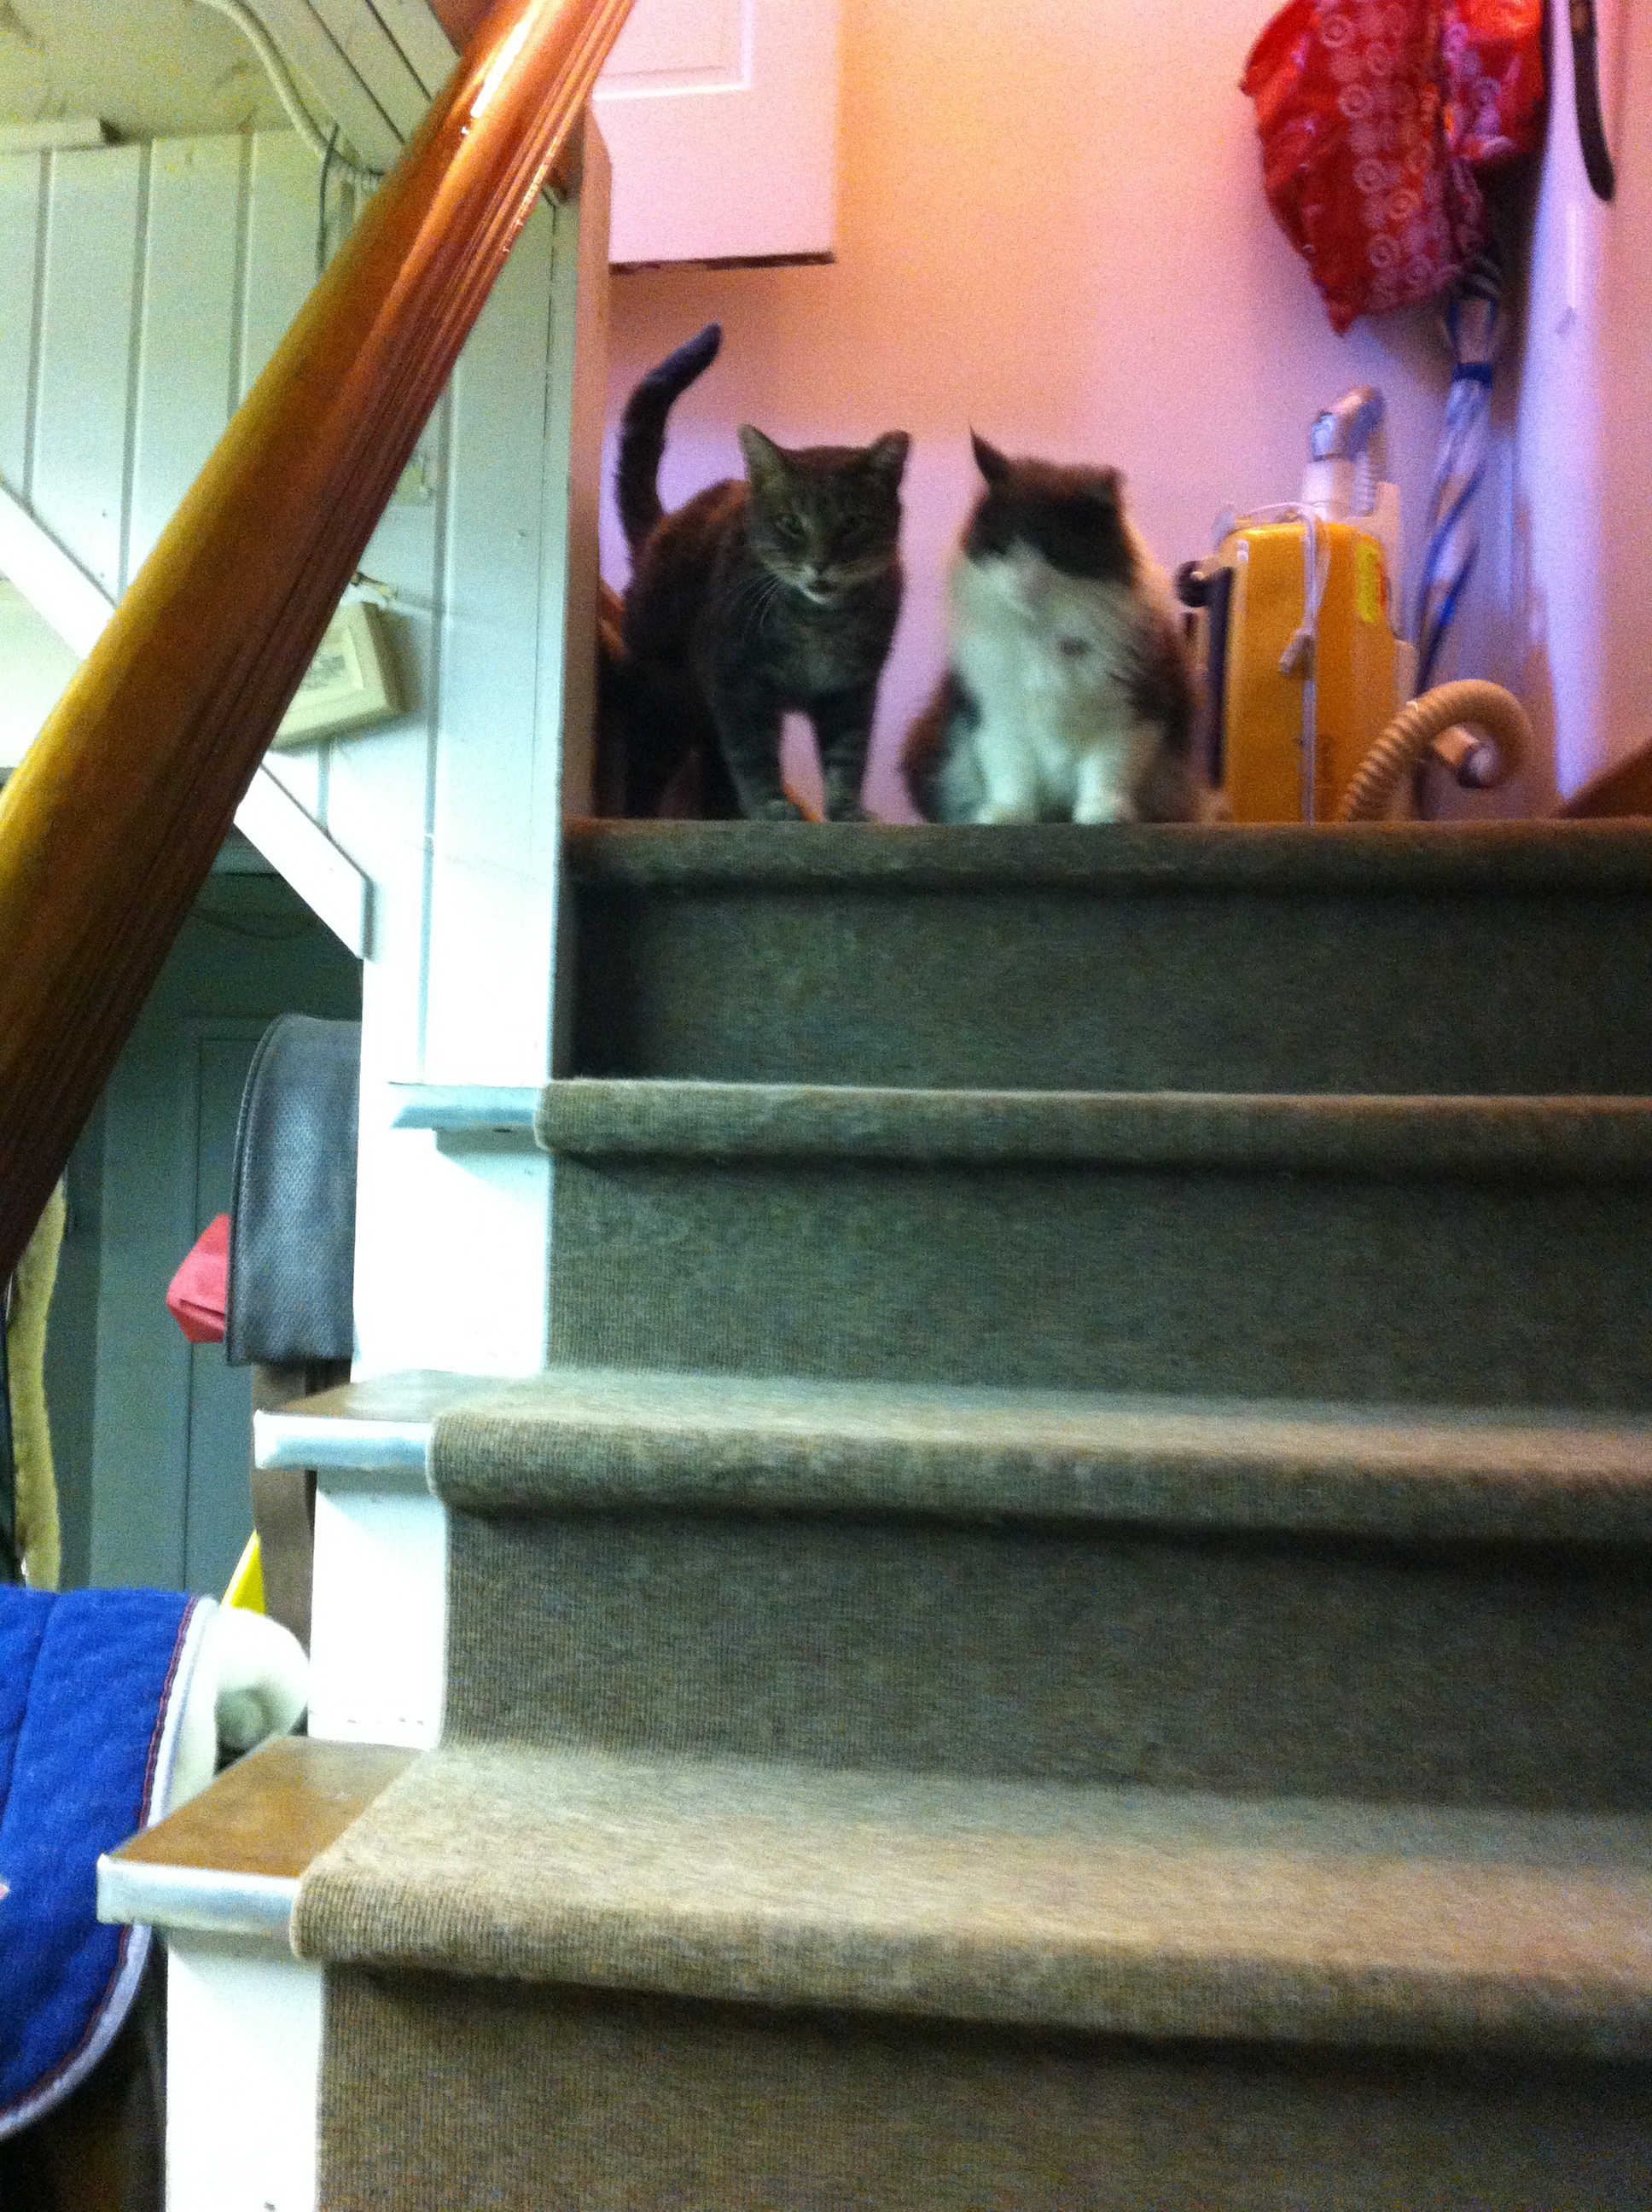 Z Z manages all from the top of the stairs.